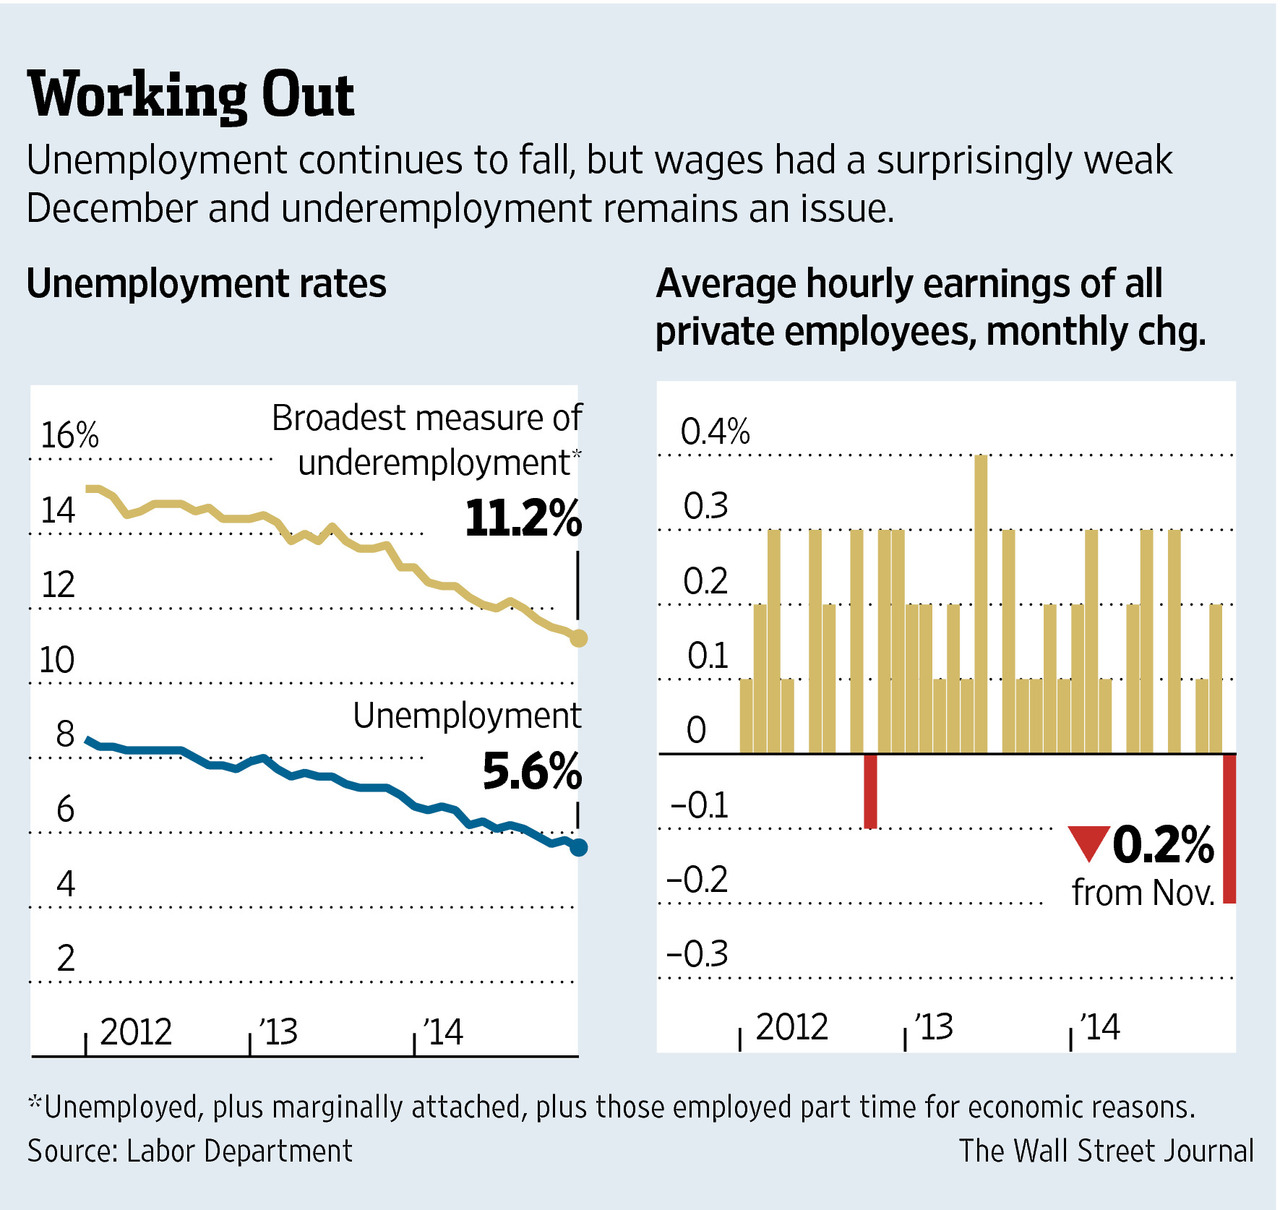 Unemployment Rate and Earnings